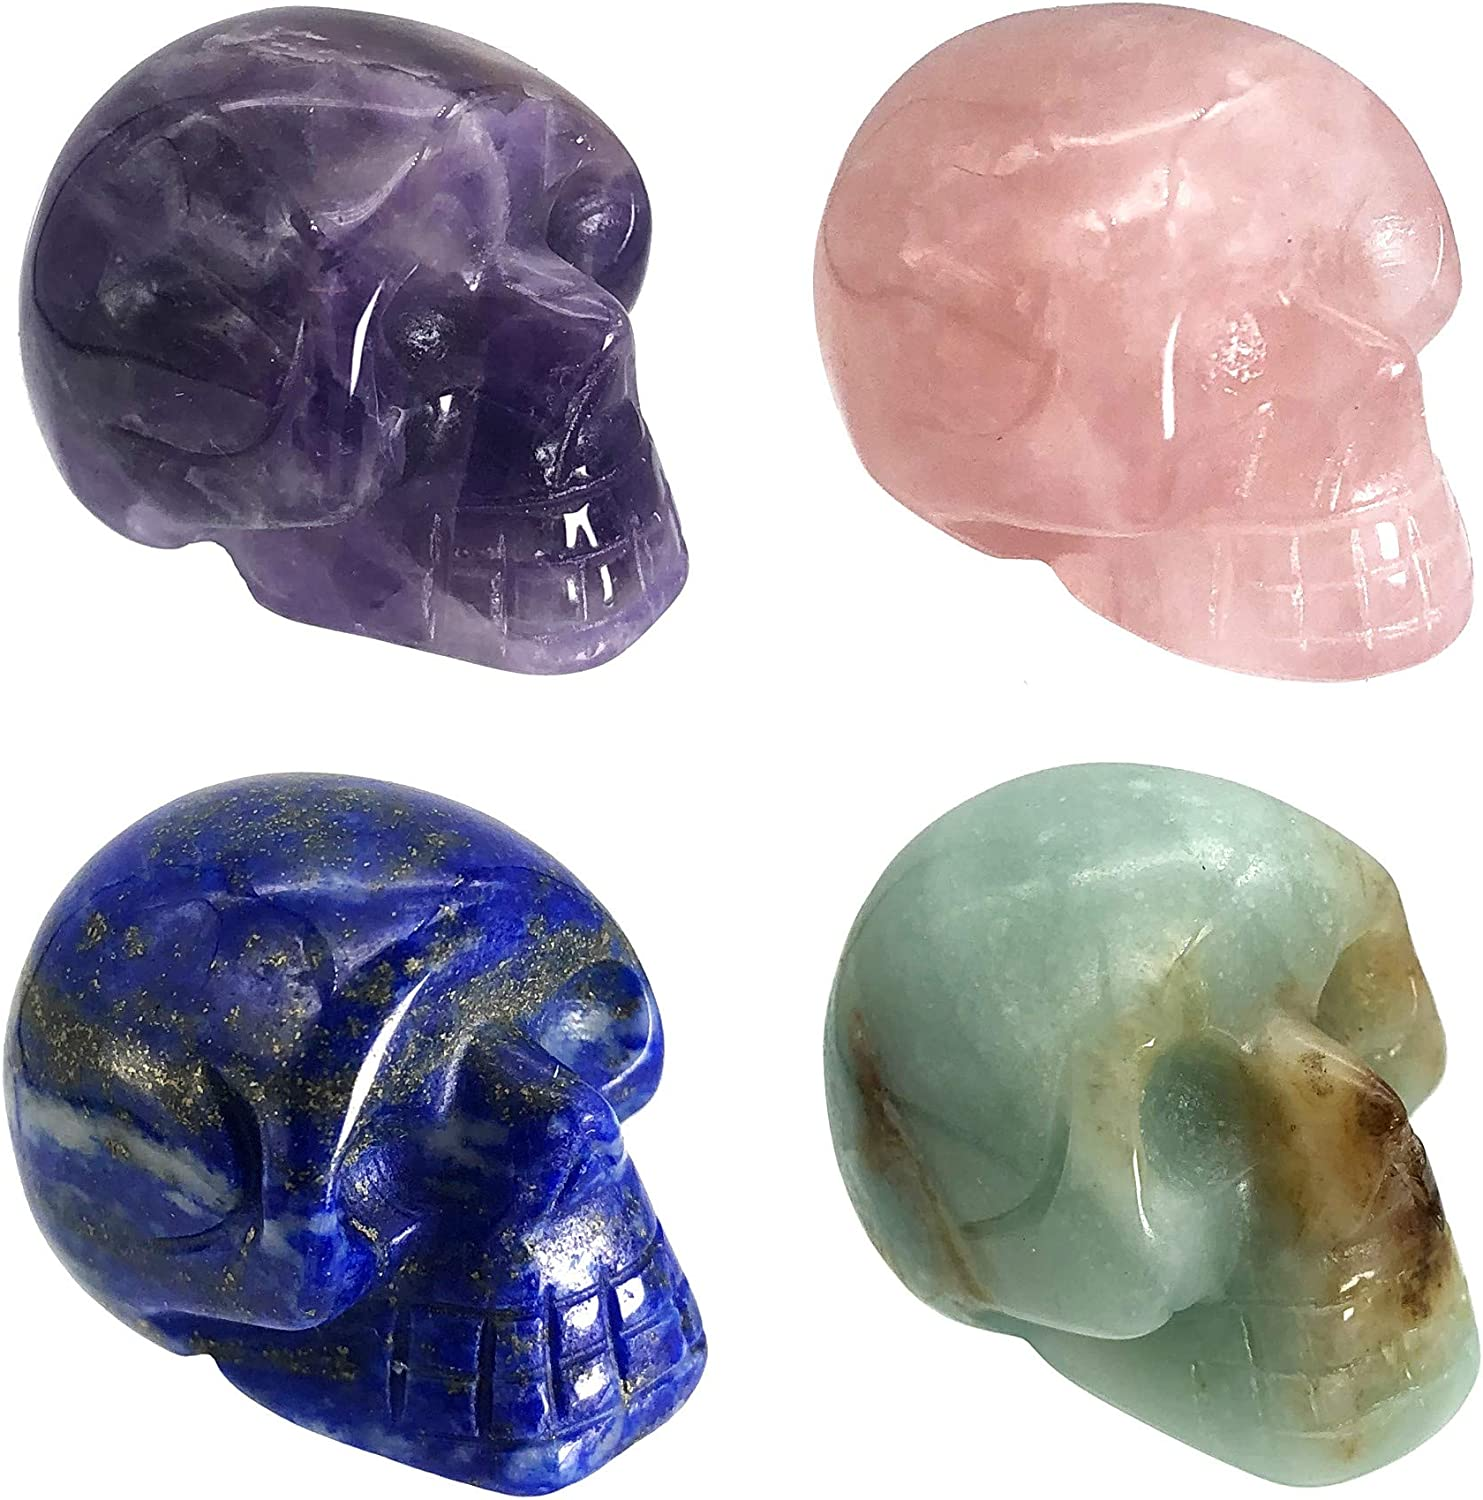 "Fekuar 4Pcs Natural Amethyst & Lapis Lazuli & Rose Quartz & Amazonite Hand Carved Stone Human Skull Statue Figurine Halloween Party Decoration, 1""(25mm)"